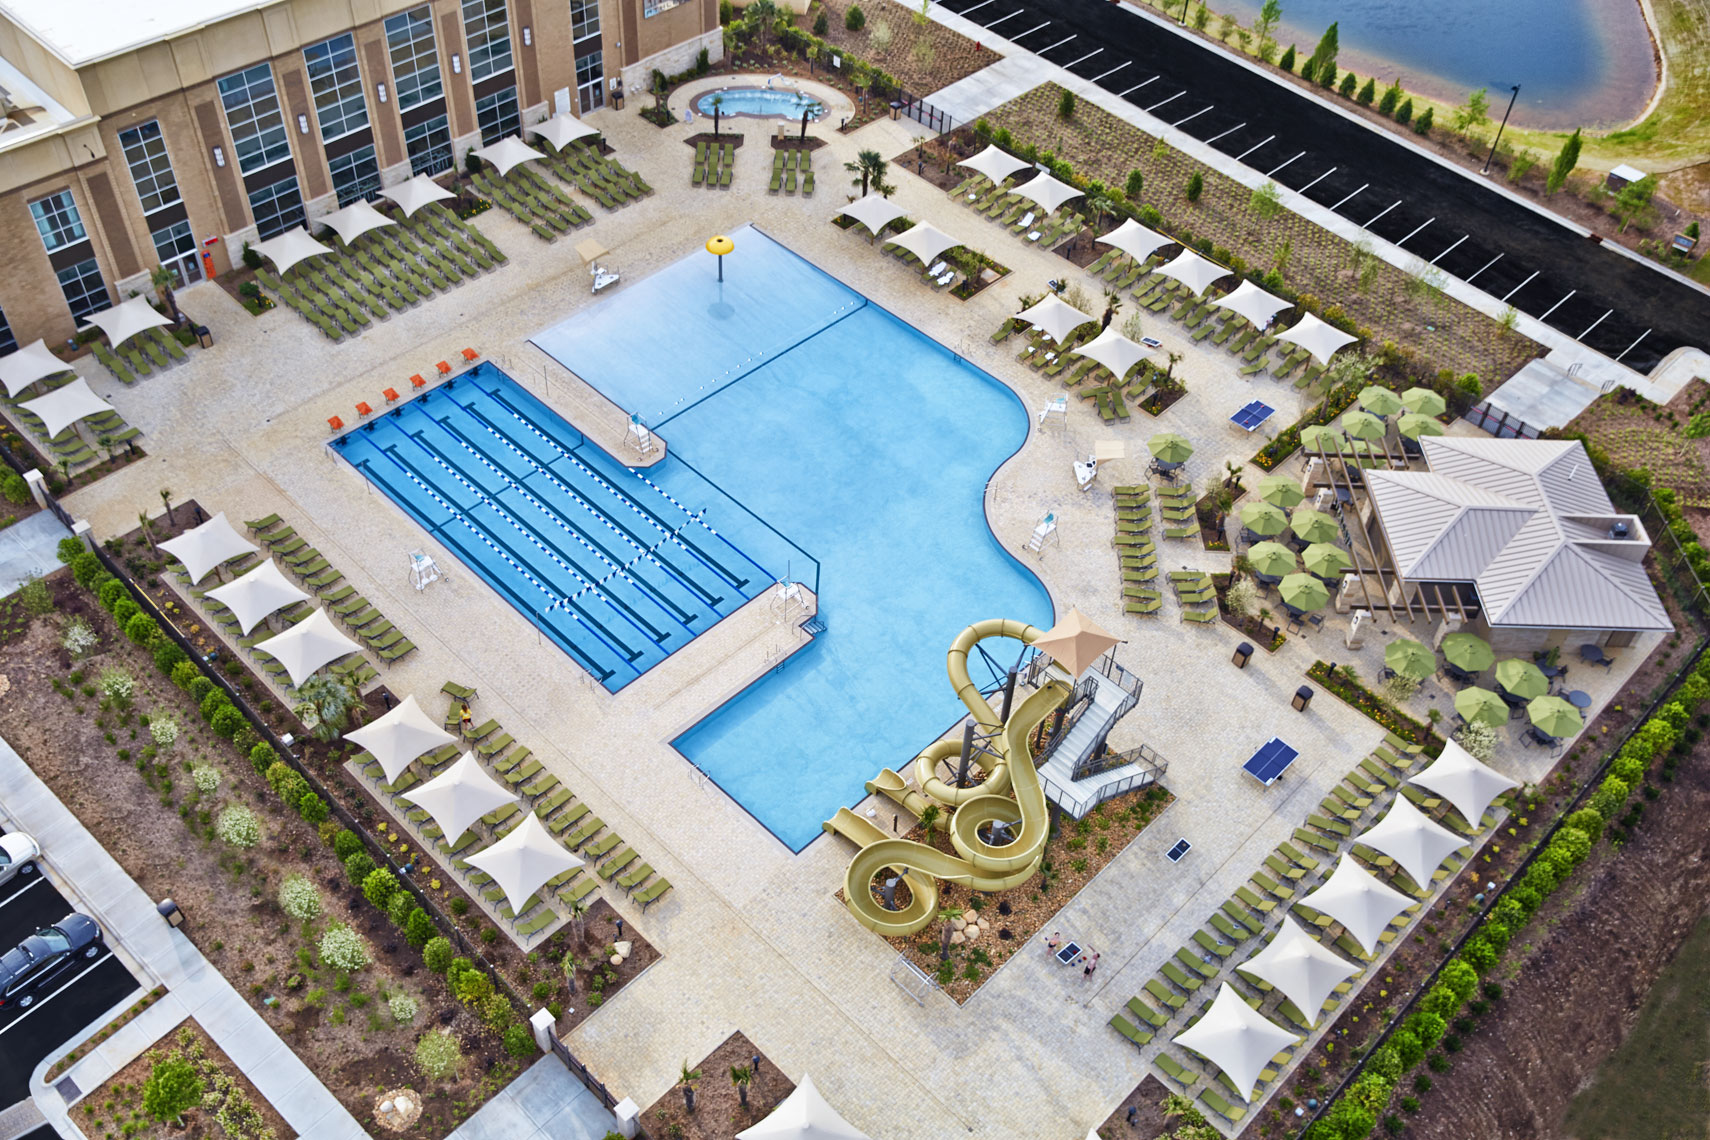 Lifetime Fitness pools/daytime/arial drone photography